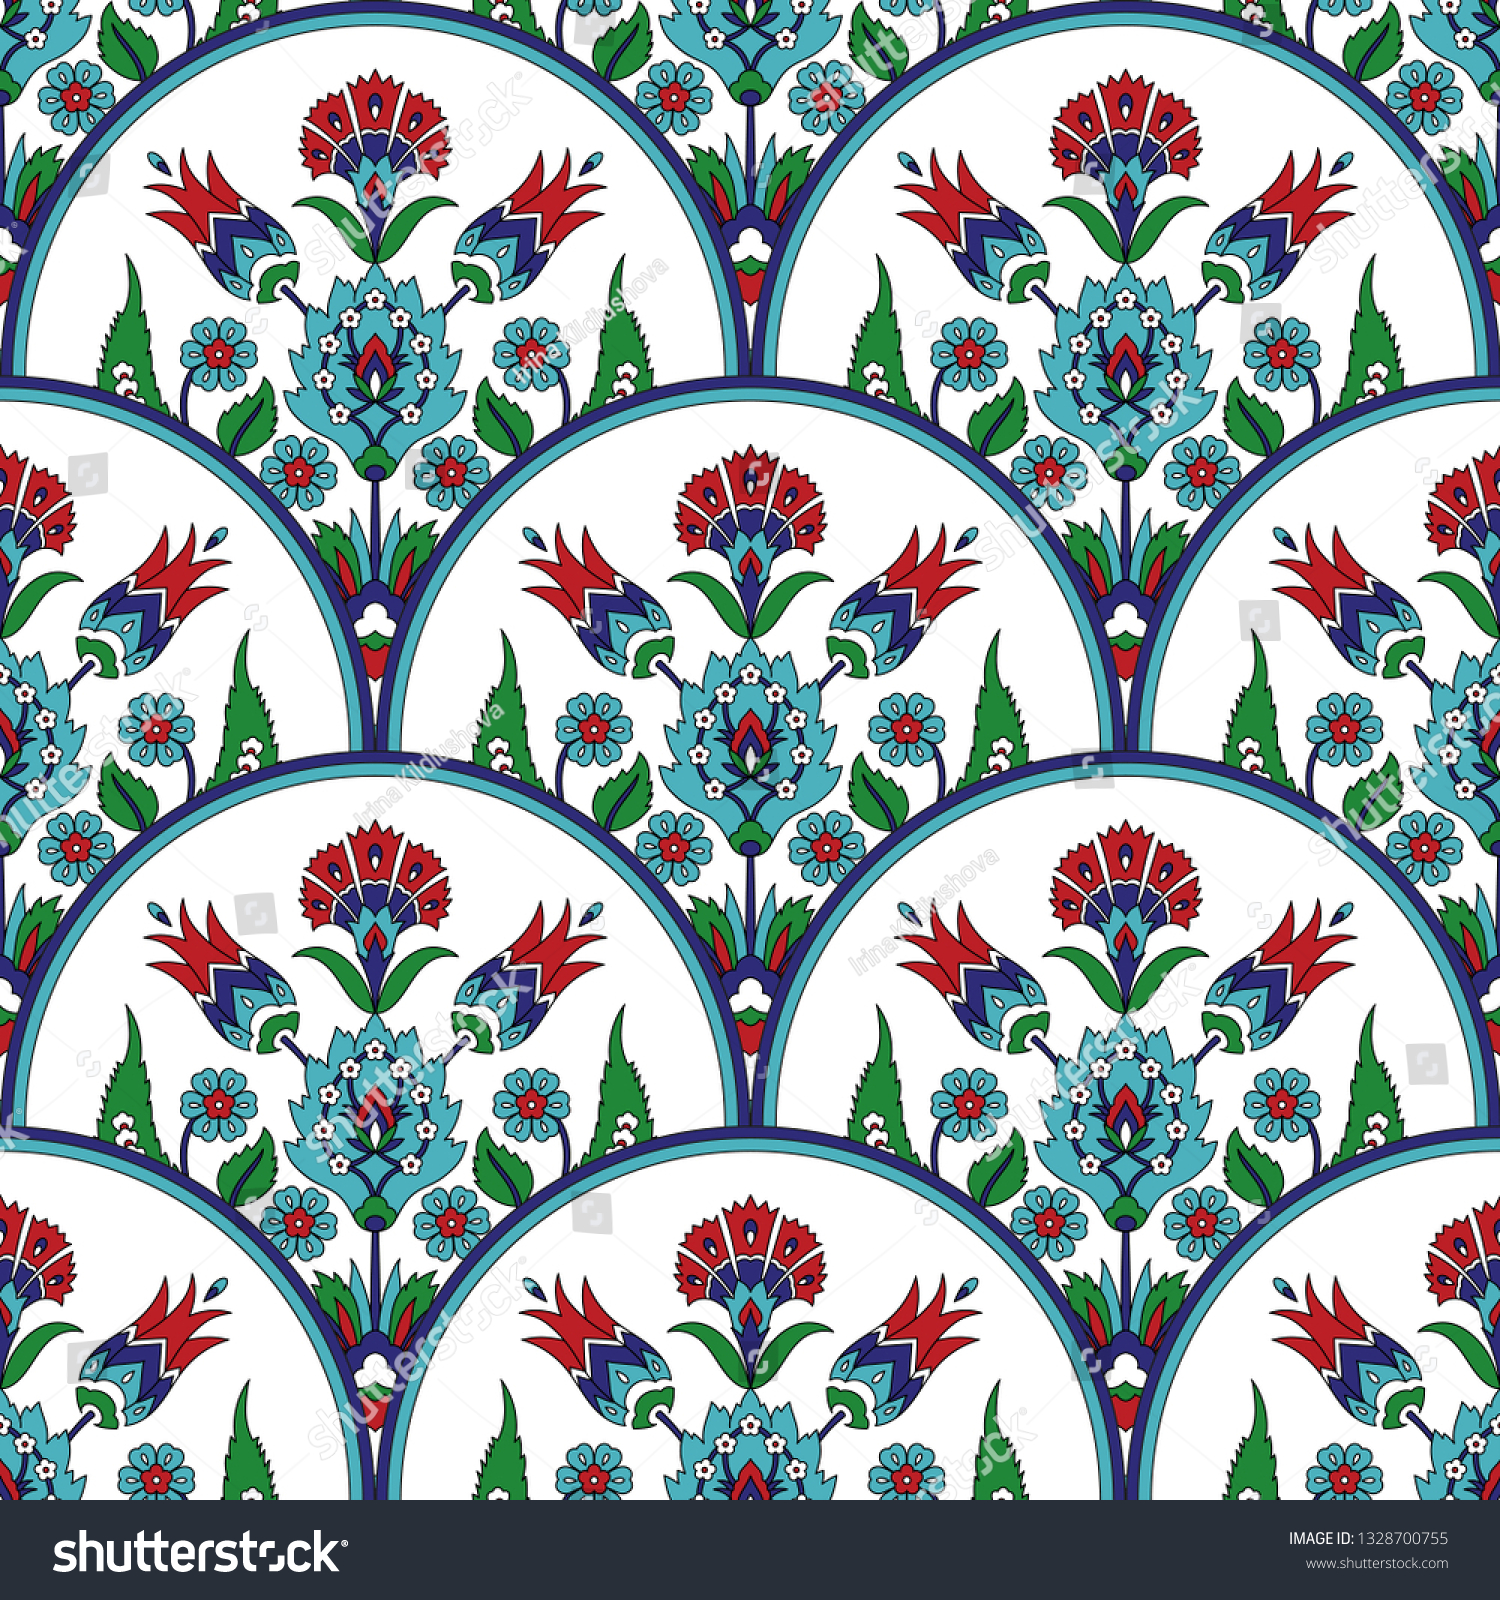 Turkish arabic pattern vector seamless. Ottoman iznik tile design with tulip flowers. Oriental background for wallpaper, backdrop, home textile, ...